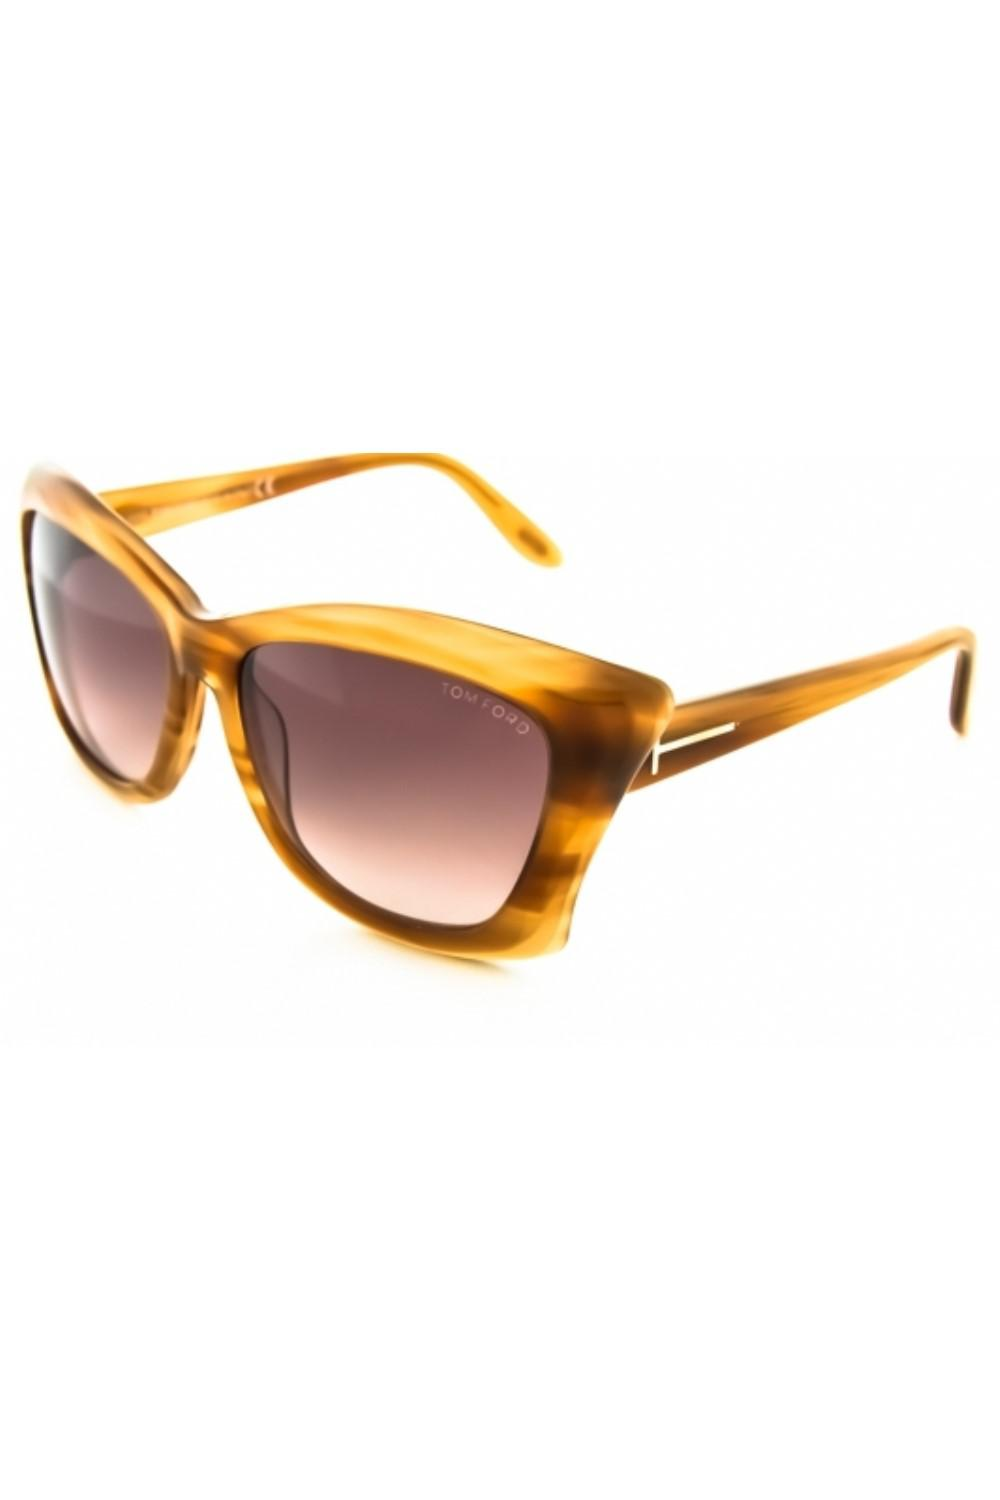 08bc4730df69 Lyst - Tom Ford Ft0280 Lana Square Sunglasses in Brown